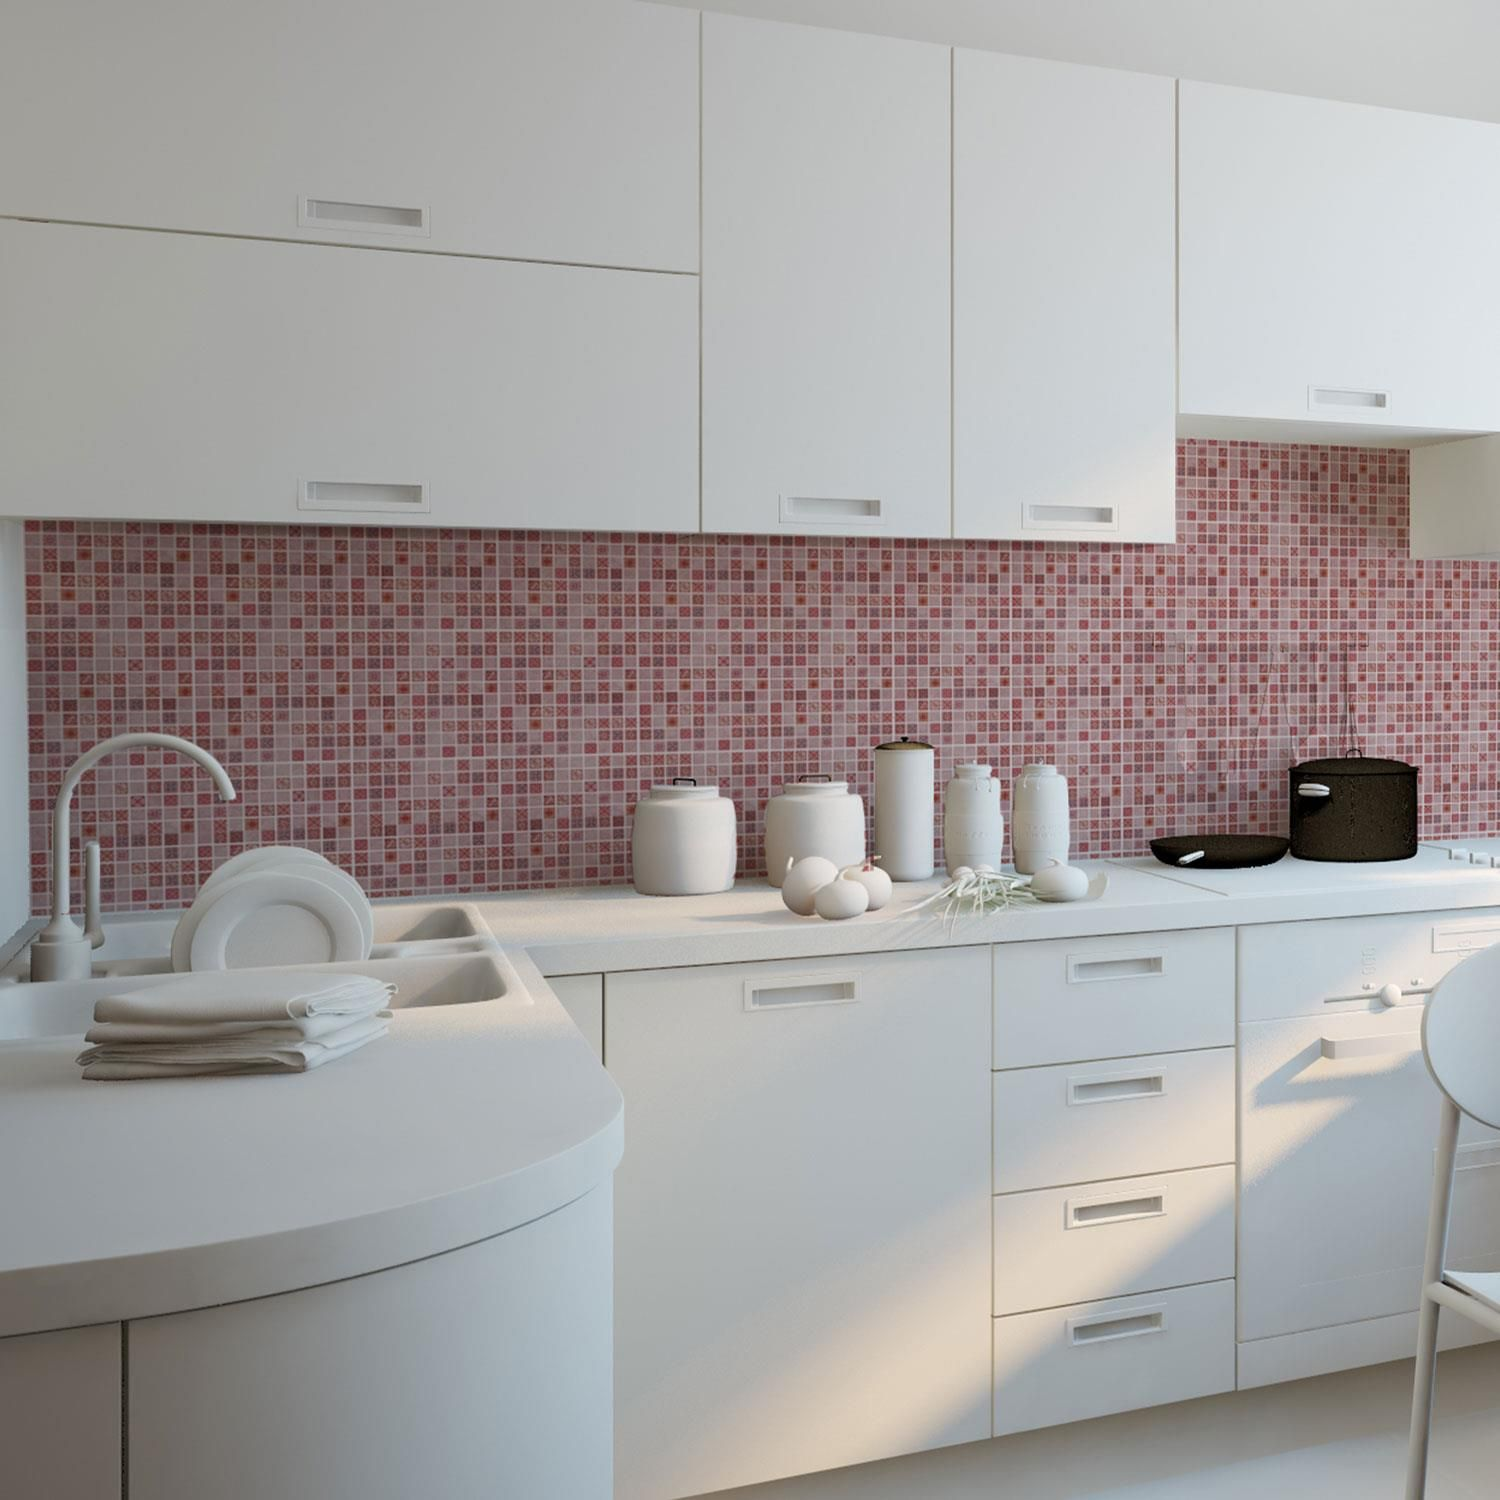 Pink Marble Vintage Azulejo Mosaic Wall Tile Sticker Set - 15cm (6inch) - 24pcs one pack Self Adhesive DIY Wall Sticker